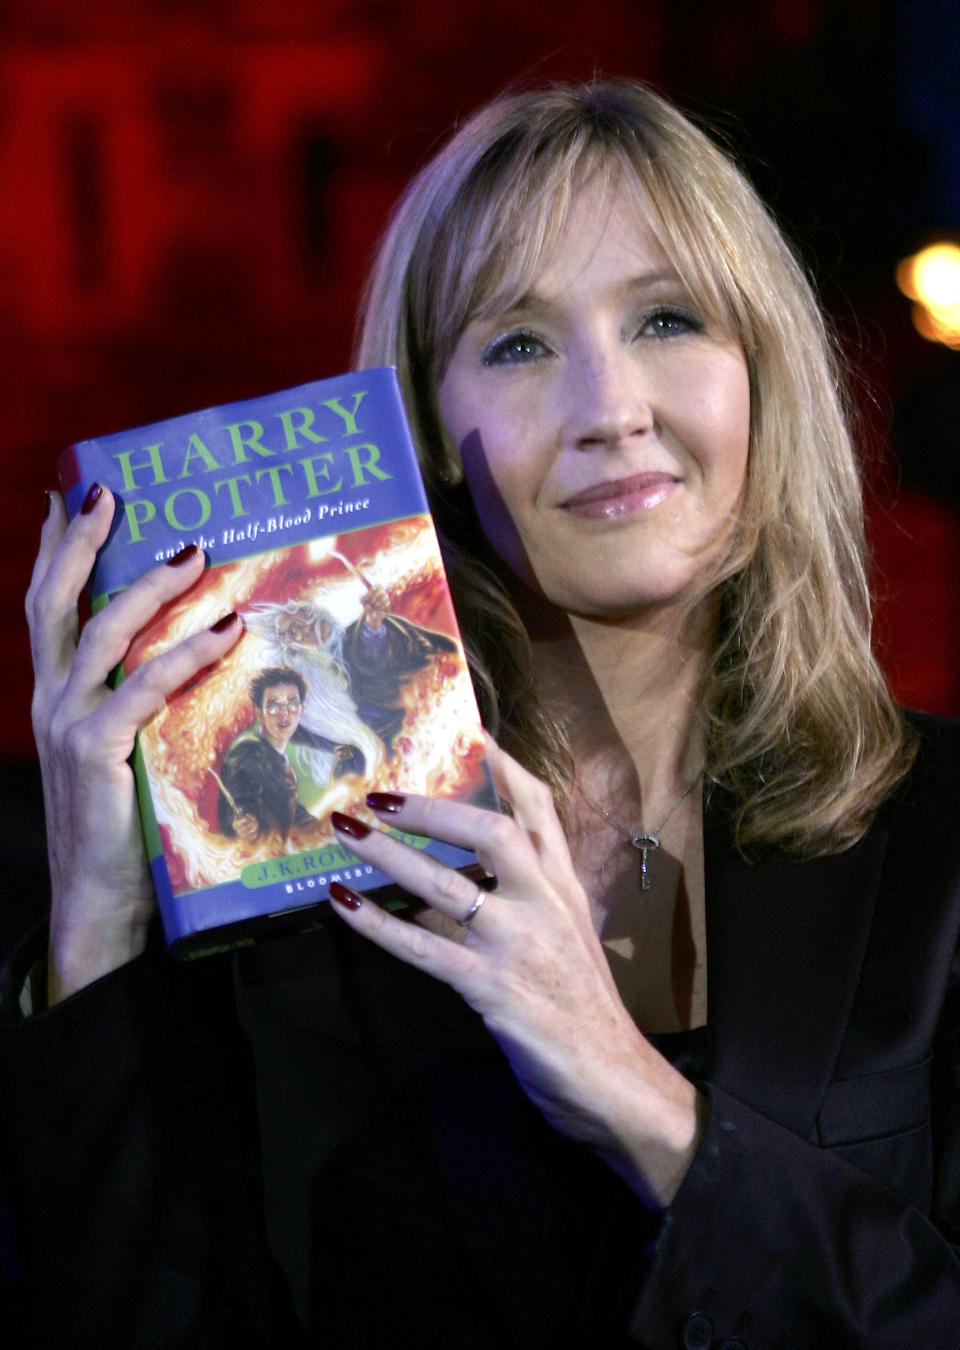 """Harry Potter author JK Rowling arrives at Edinburgh Castle where she will read passages from the sixth magical children's title """"Harry Potter And The Half-Blood Prince"""", on July 15, 2005 in Edinburgh, Scotland. 70 junior reporters from around the world, aged between eight and 16, make up the audience, and meet and ask questions to the author ahead of the midnight release of the new volume. *** Local Caption *** JK Rowling"""